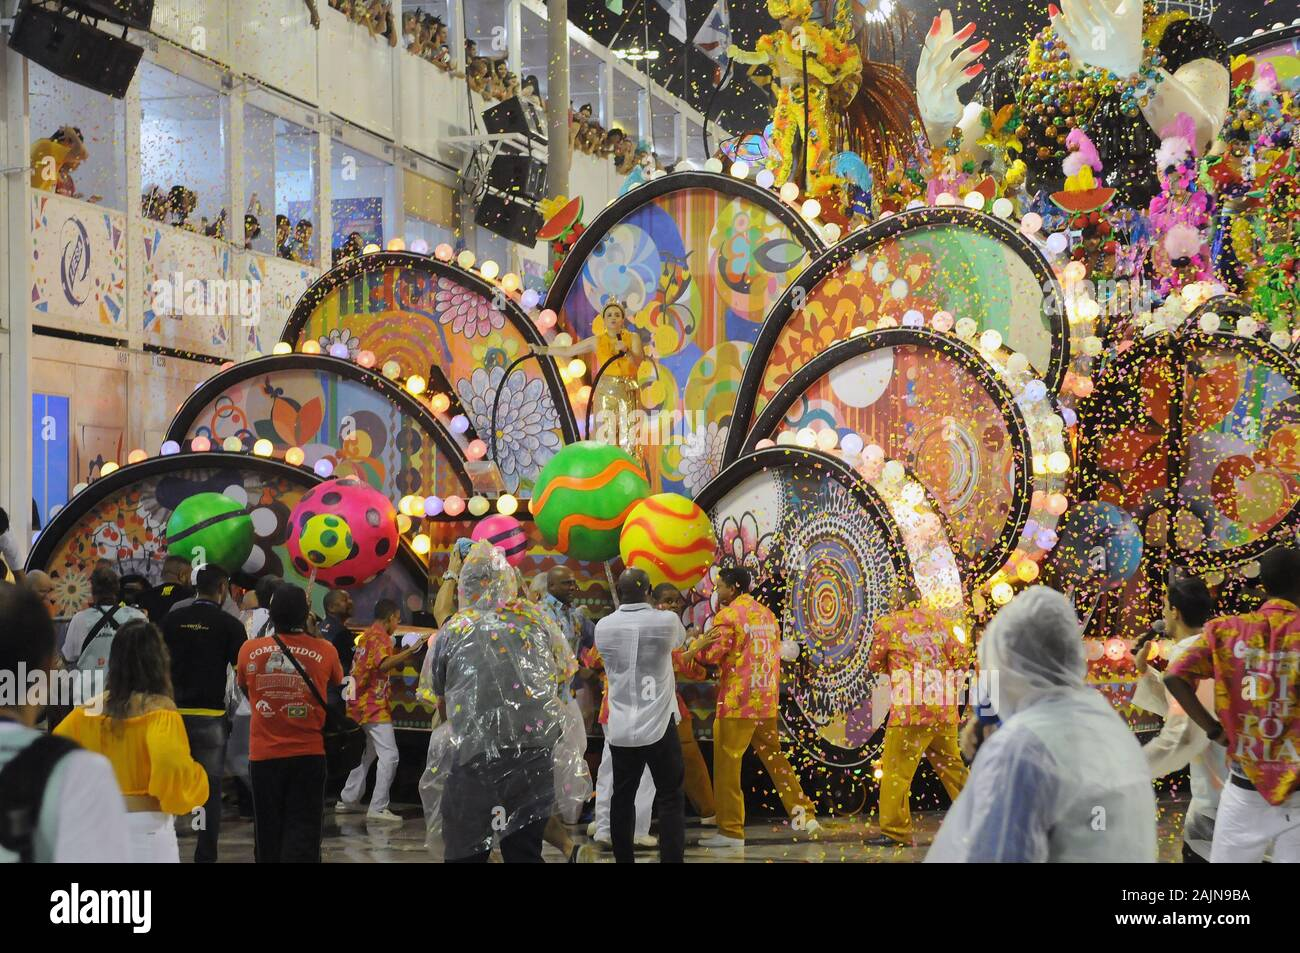 Rio de Janeiro, Brazil, February 26, 2017. Float, causes accident and injures during the parade of samba schools in the sambadrome of the city of Rio Stock Photo